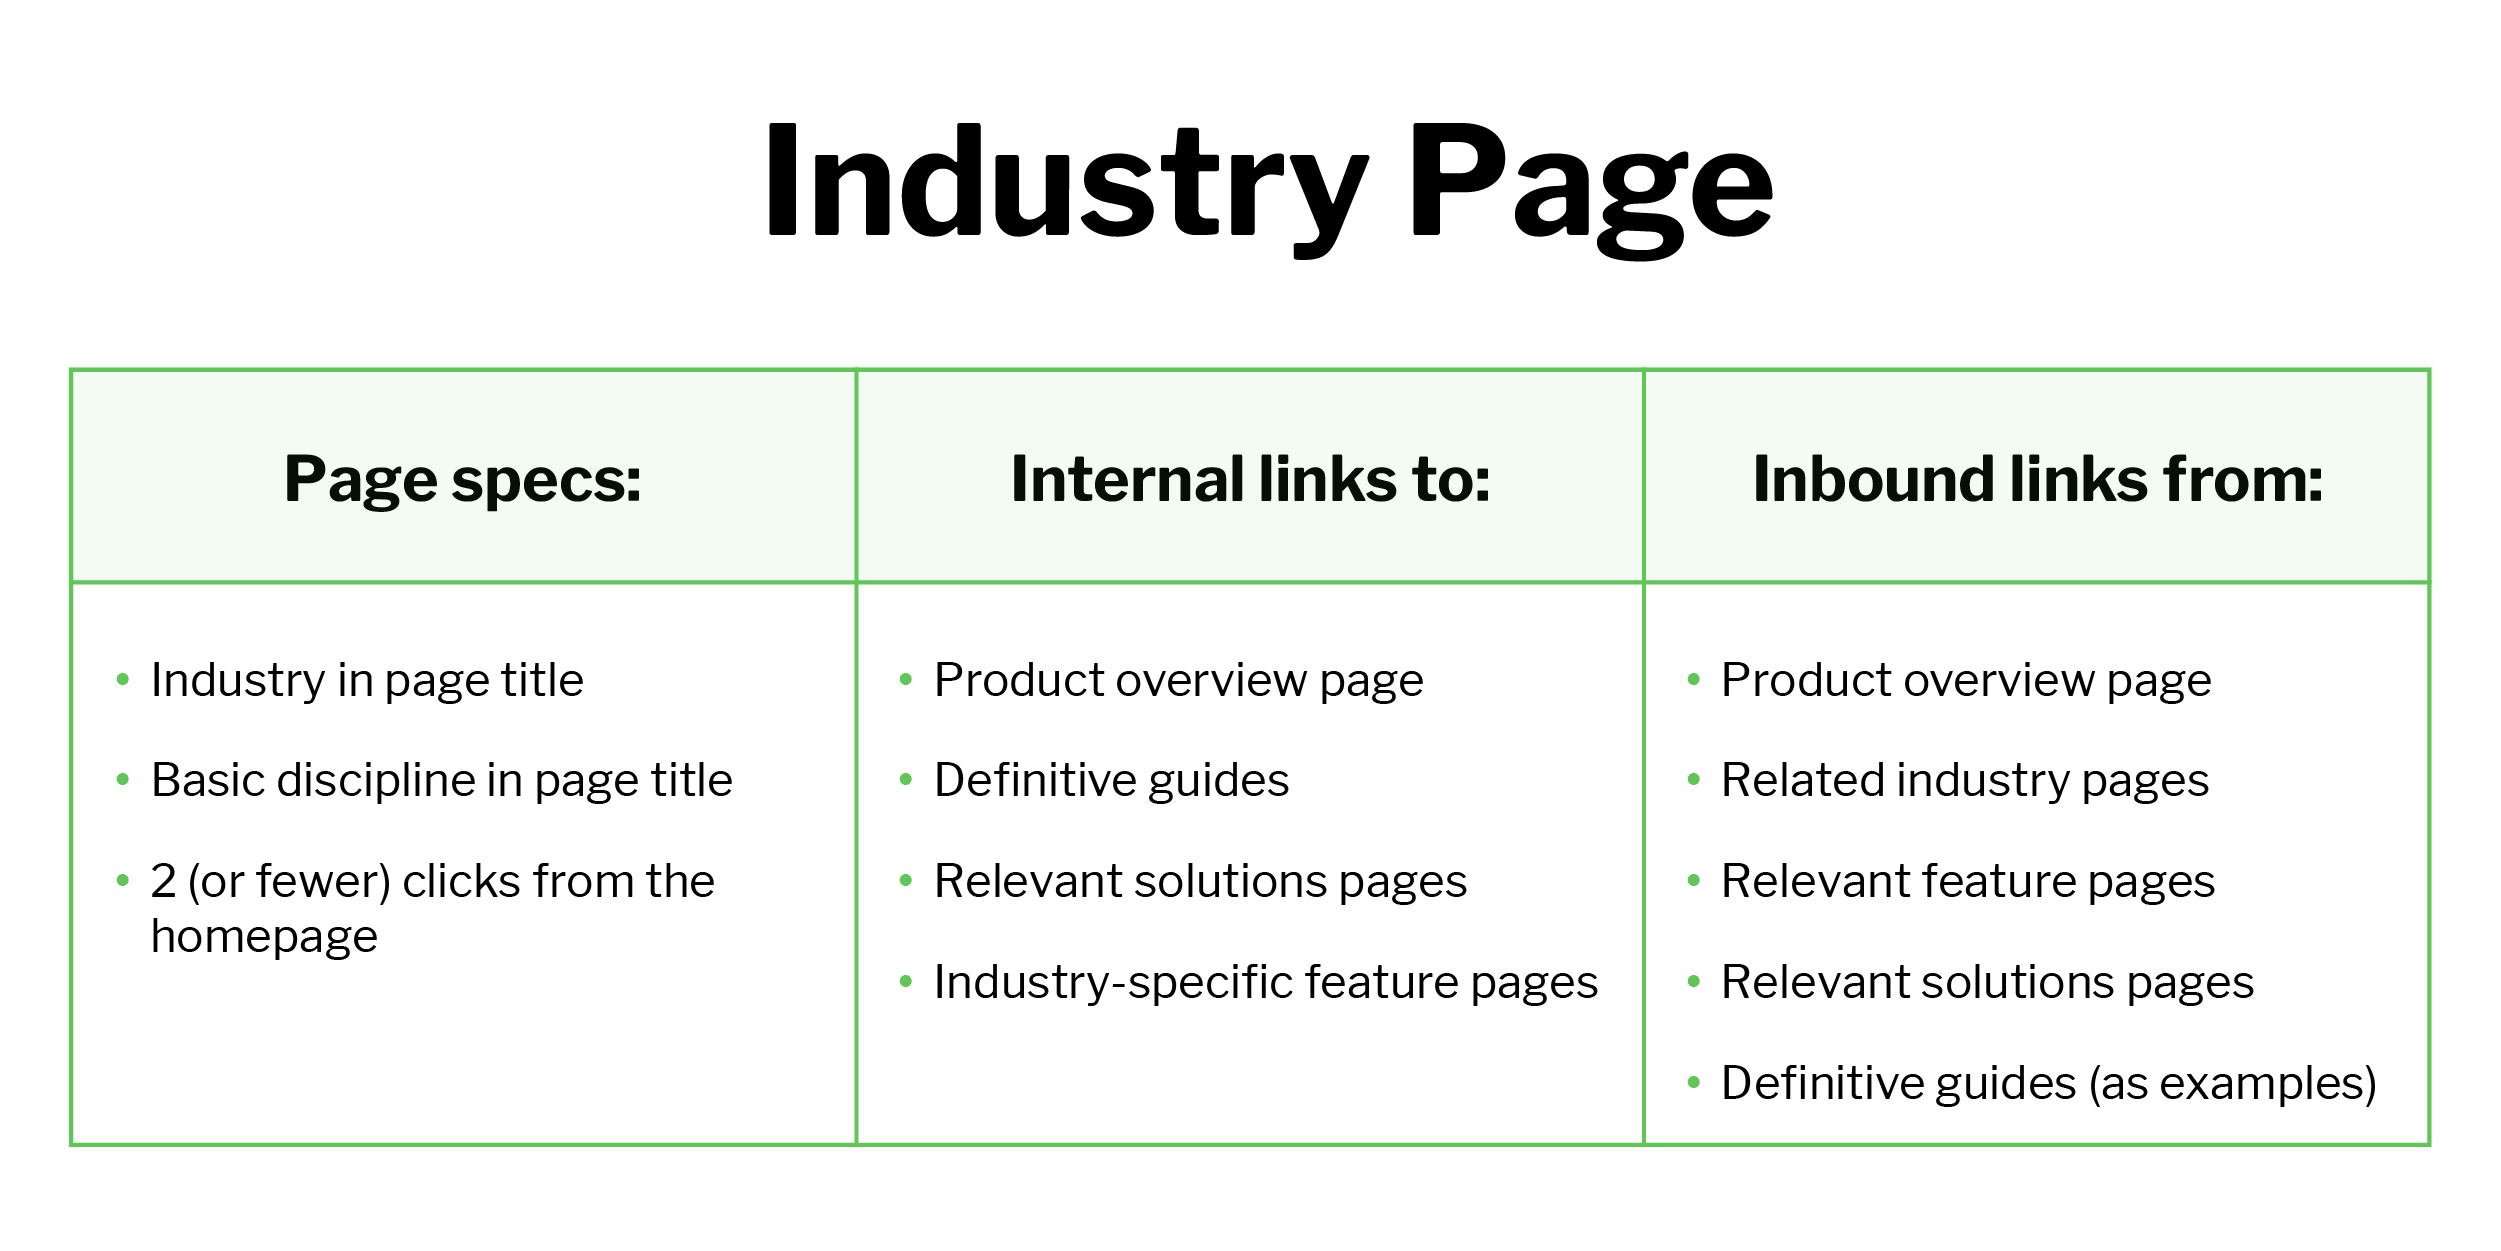 List of tips for optimizing B2B SaaS industry pages for SEO